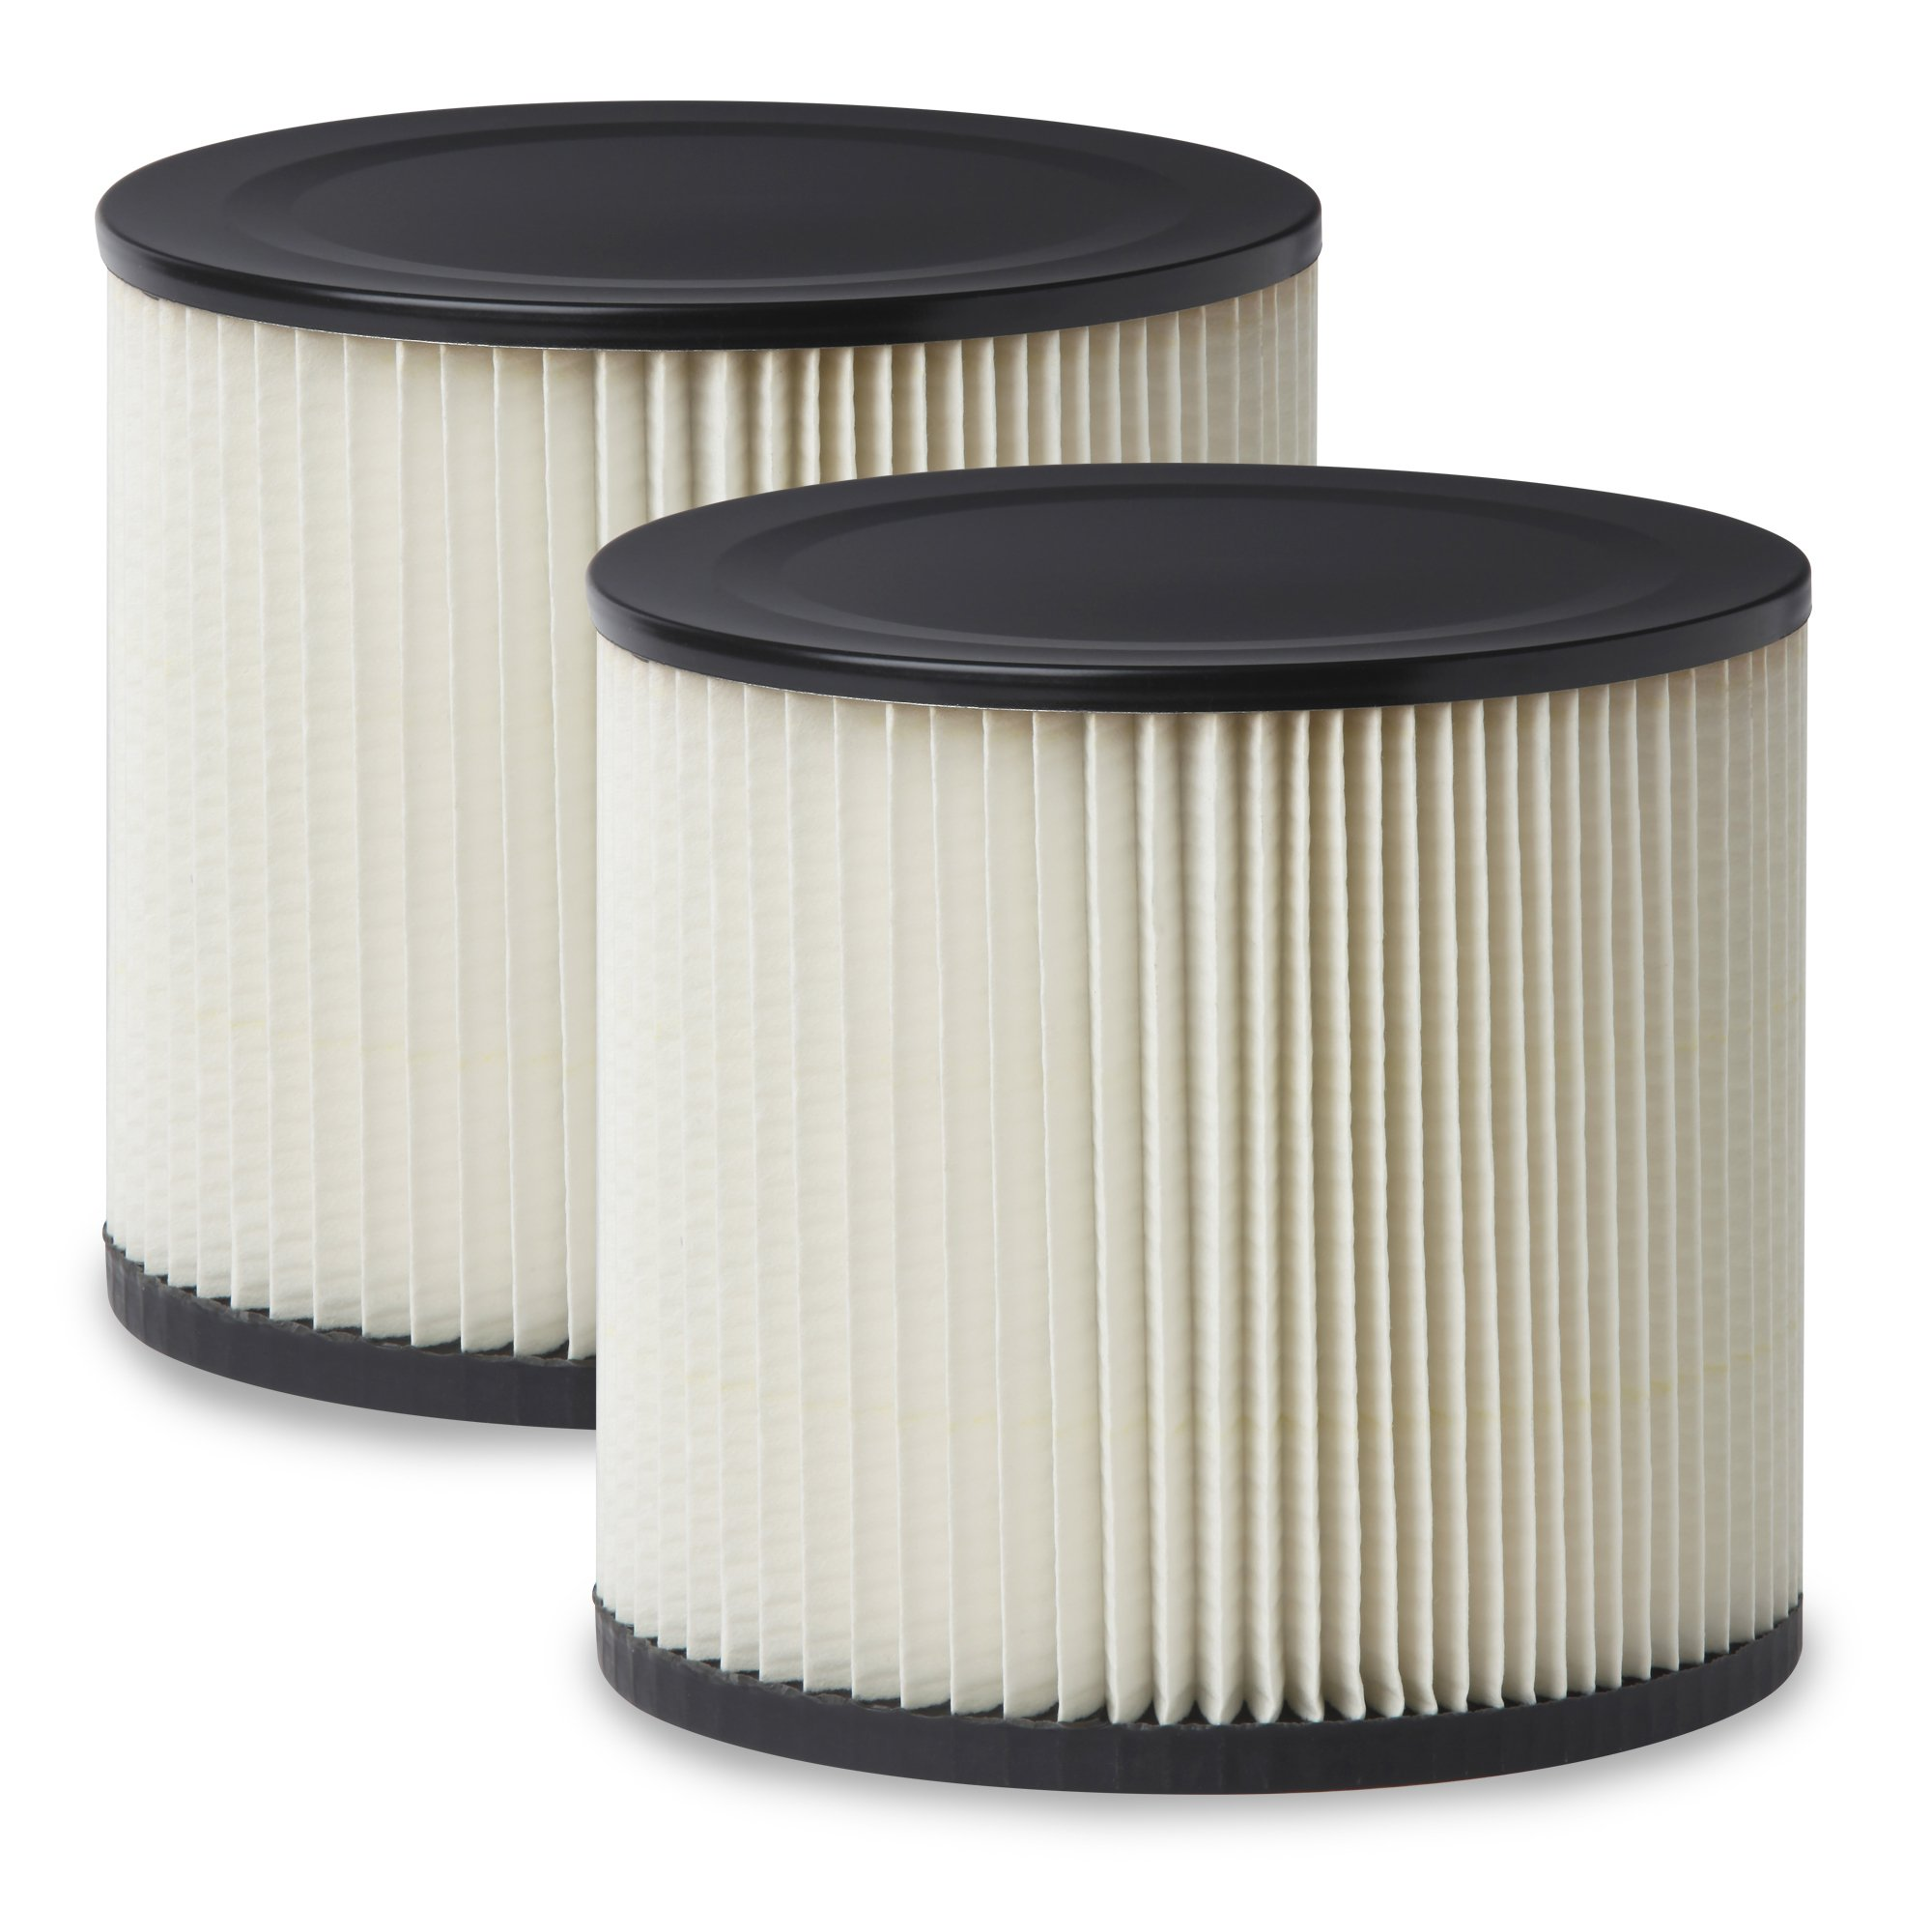 Multi-Fit Wet Dry Vac Filters VF2007TP Standard Wet Dry Vacuum Filters (2 Pack - Shop Vacuum Cleaner Filters) Fits Most 5 gallon & Larger Shop-Vac, Vacmaster & Genie Shop Vacuum Cleaners by WORKSHOP Wet/Dry Vacs